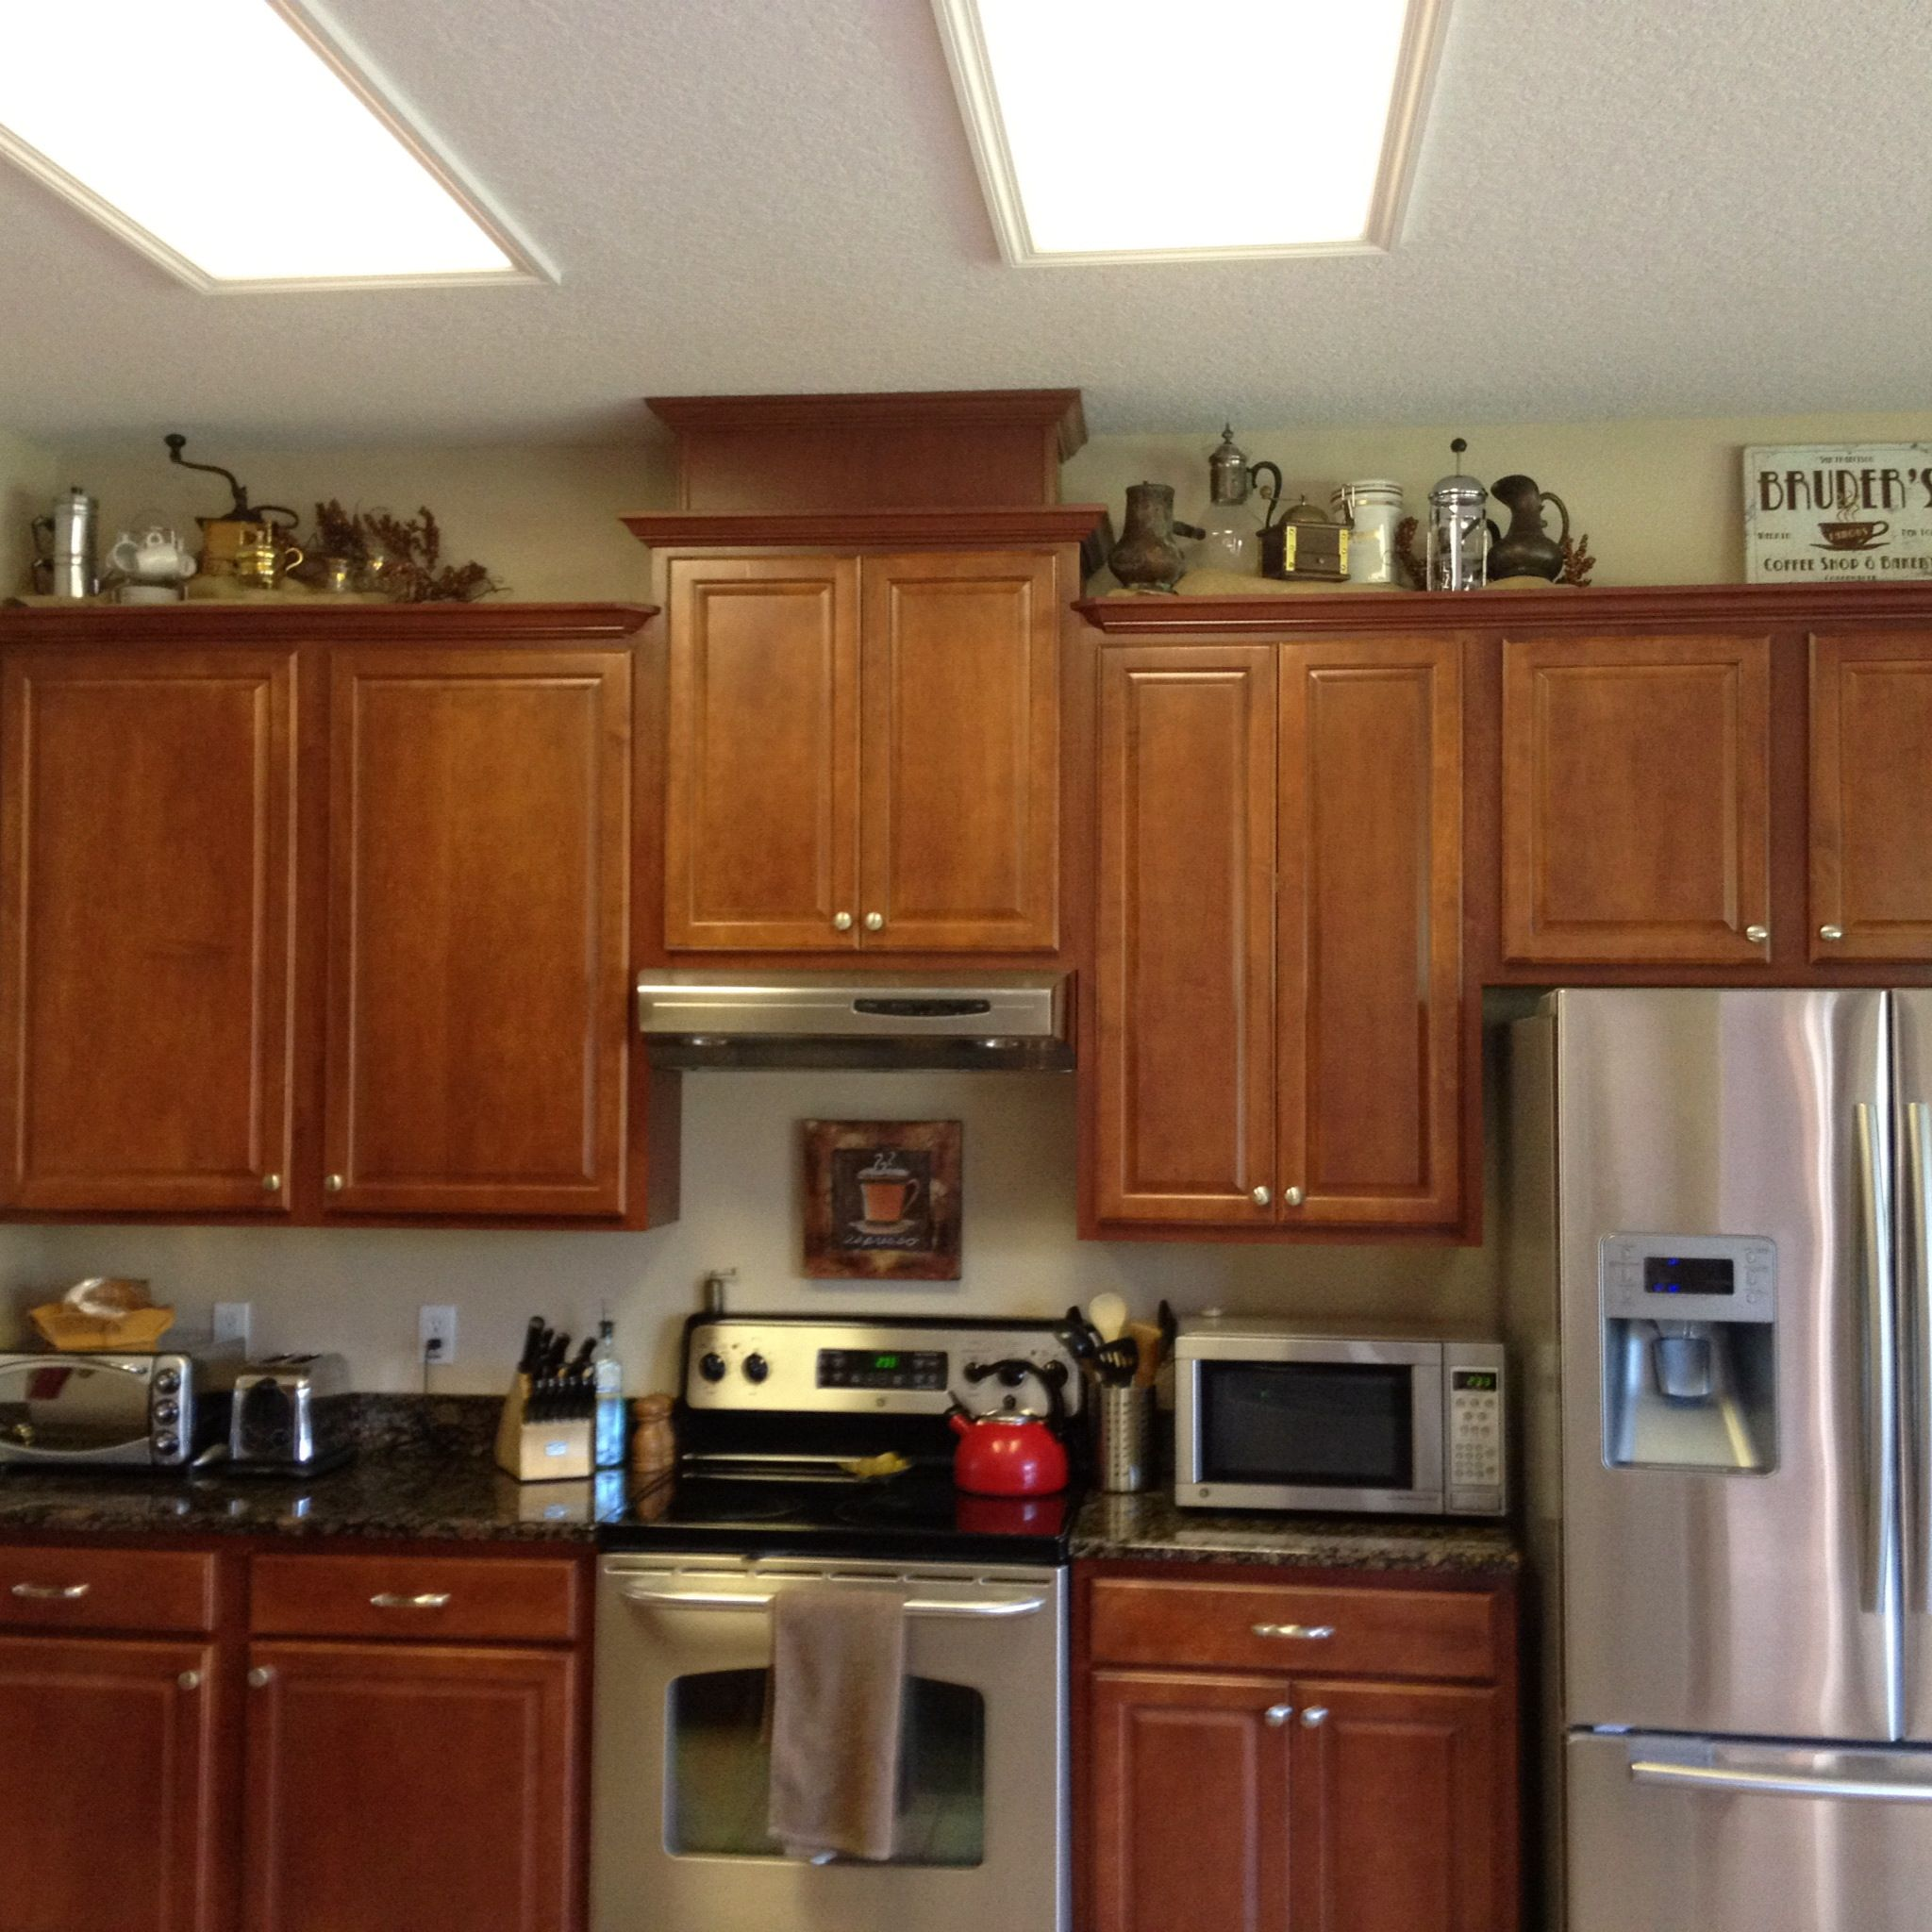 Coffee Themed Decor Above Cabinets Home Decor Kitchen Pinterest